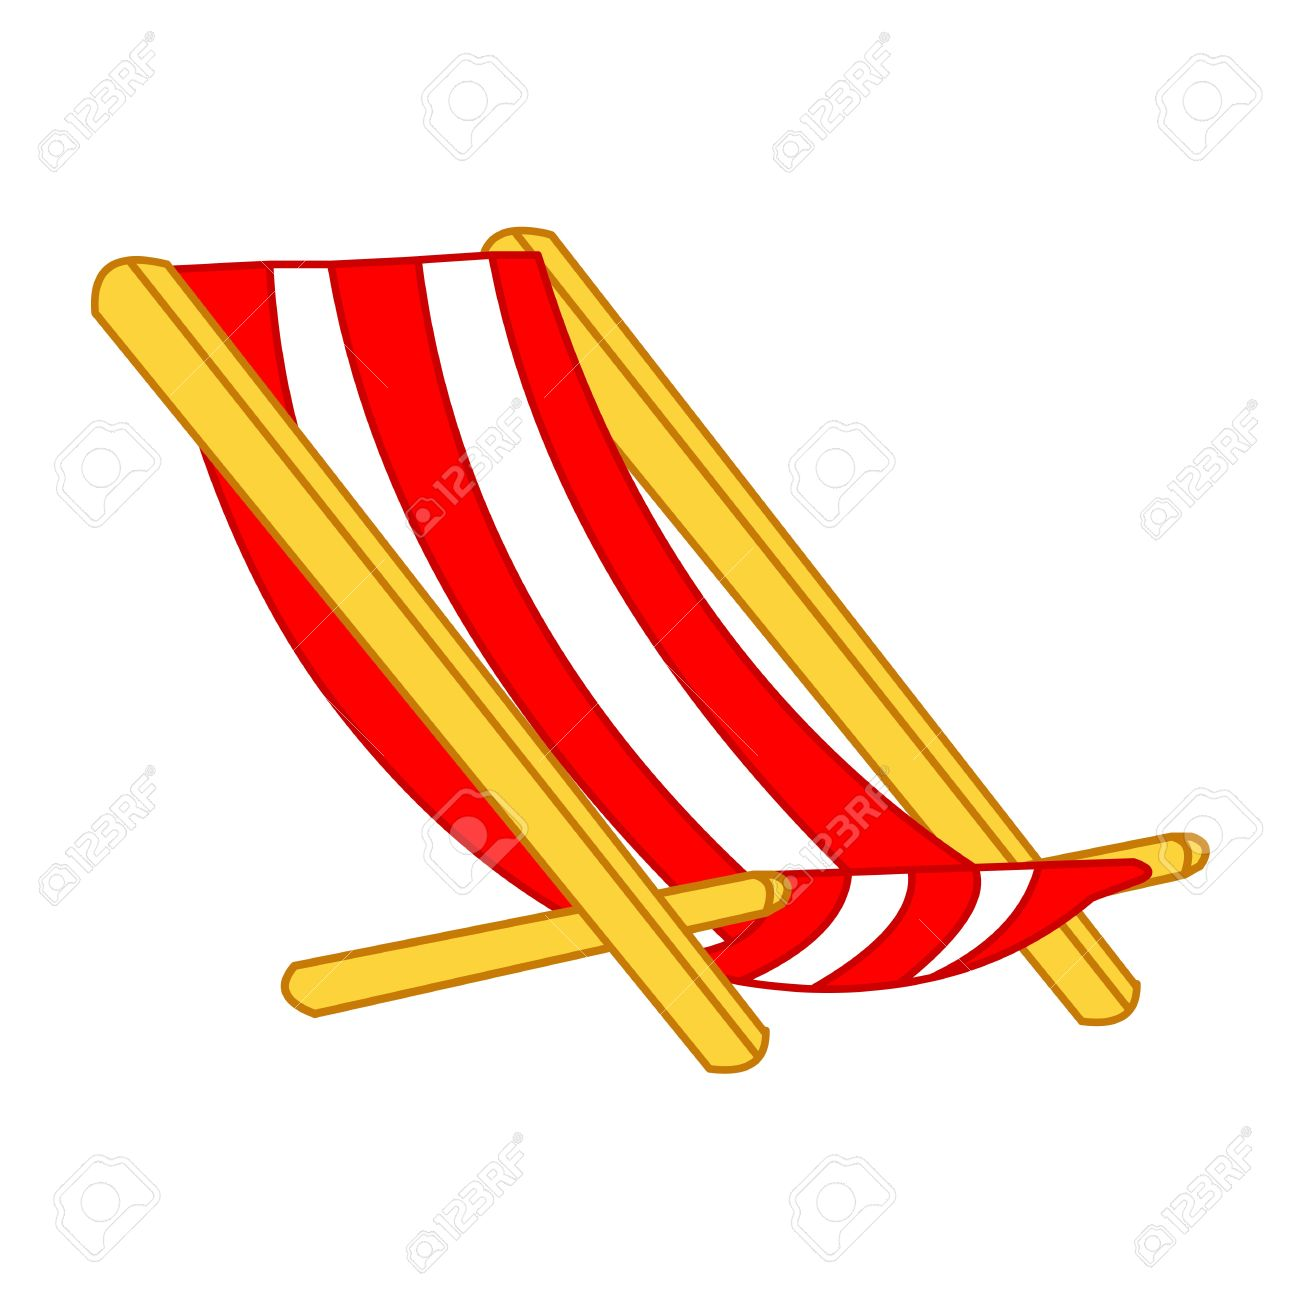 755 Recliner Chair Stock Illustrations, Cliparts And Royalty Free.